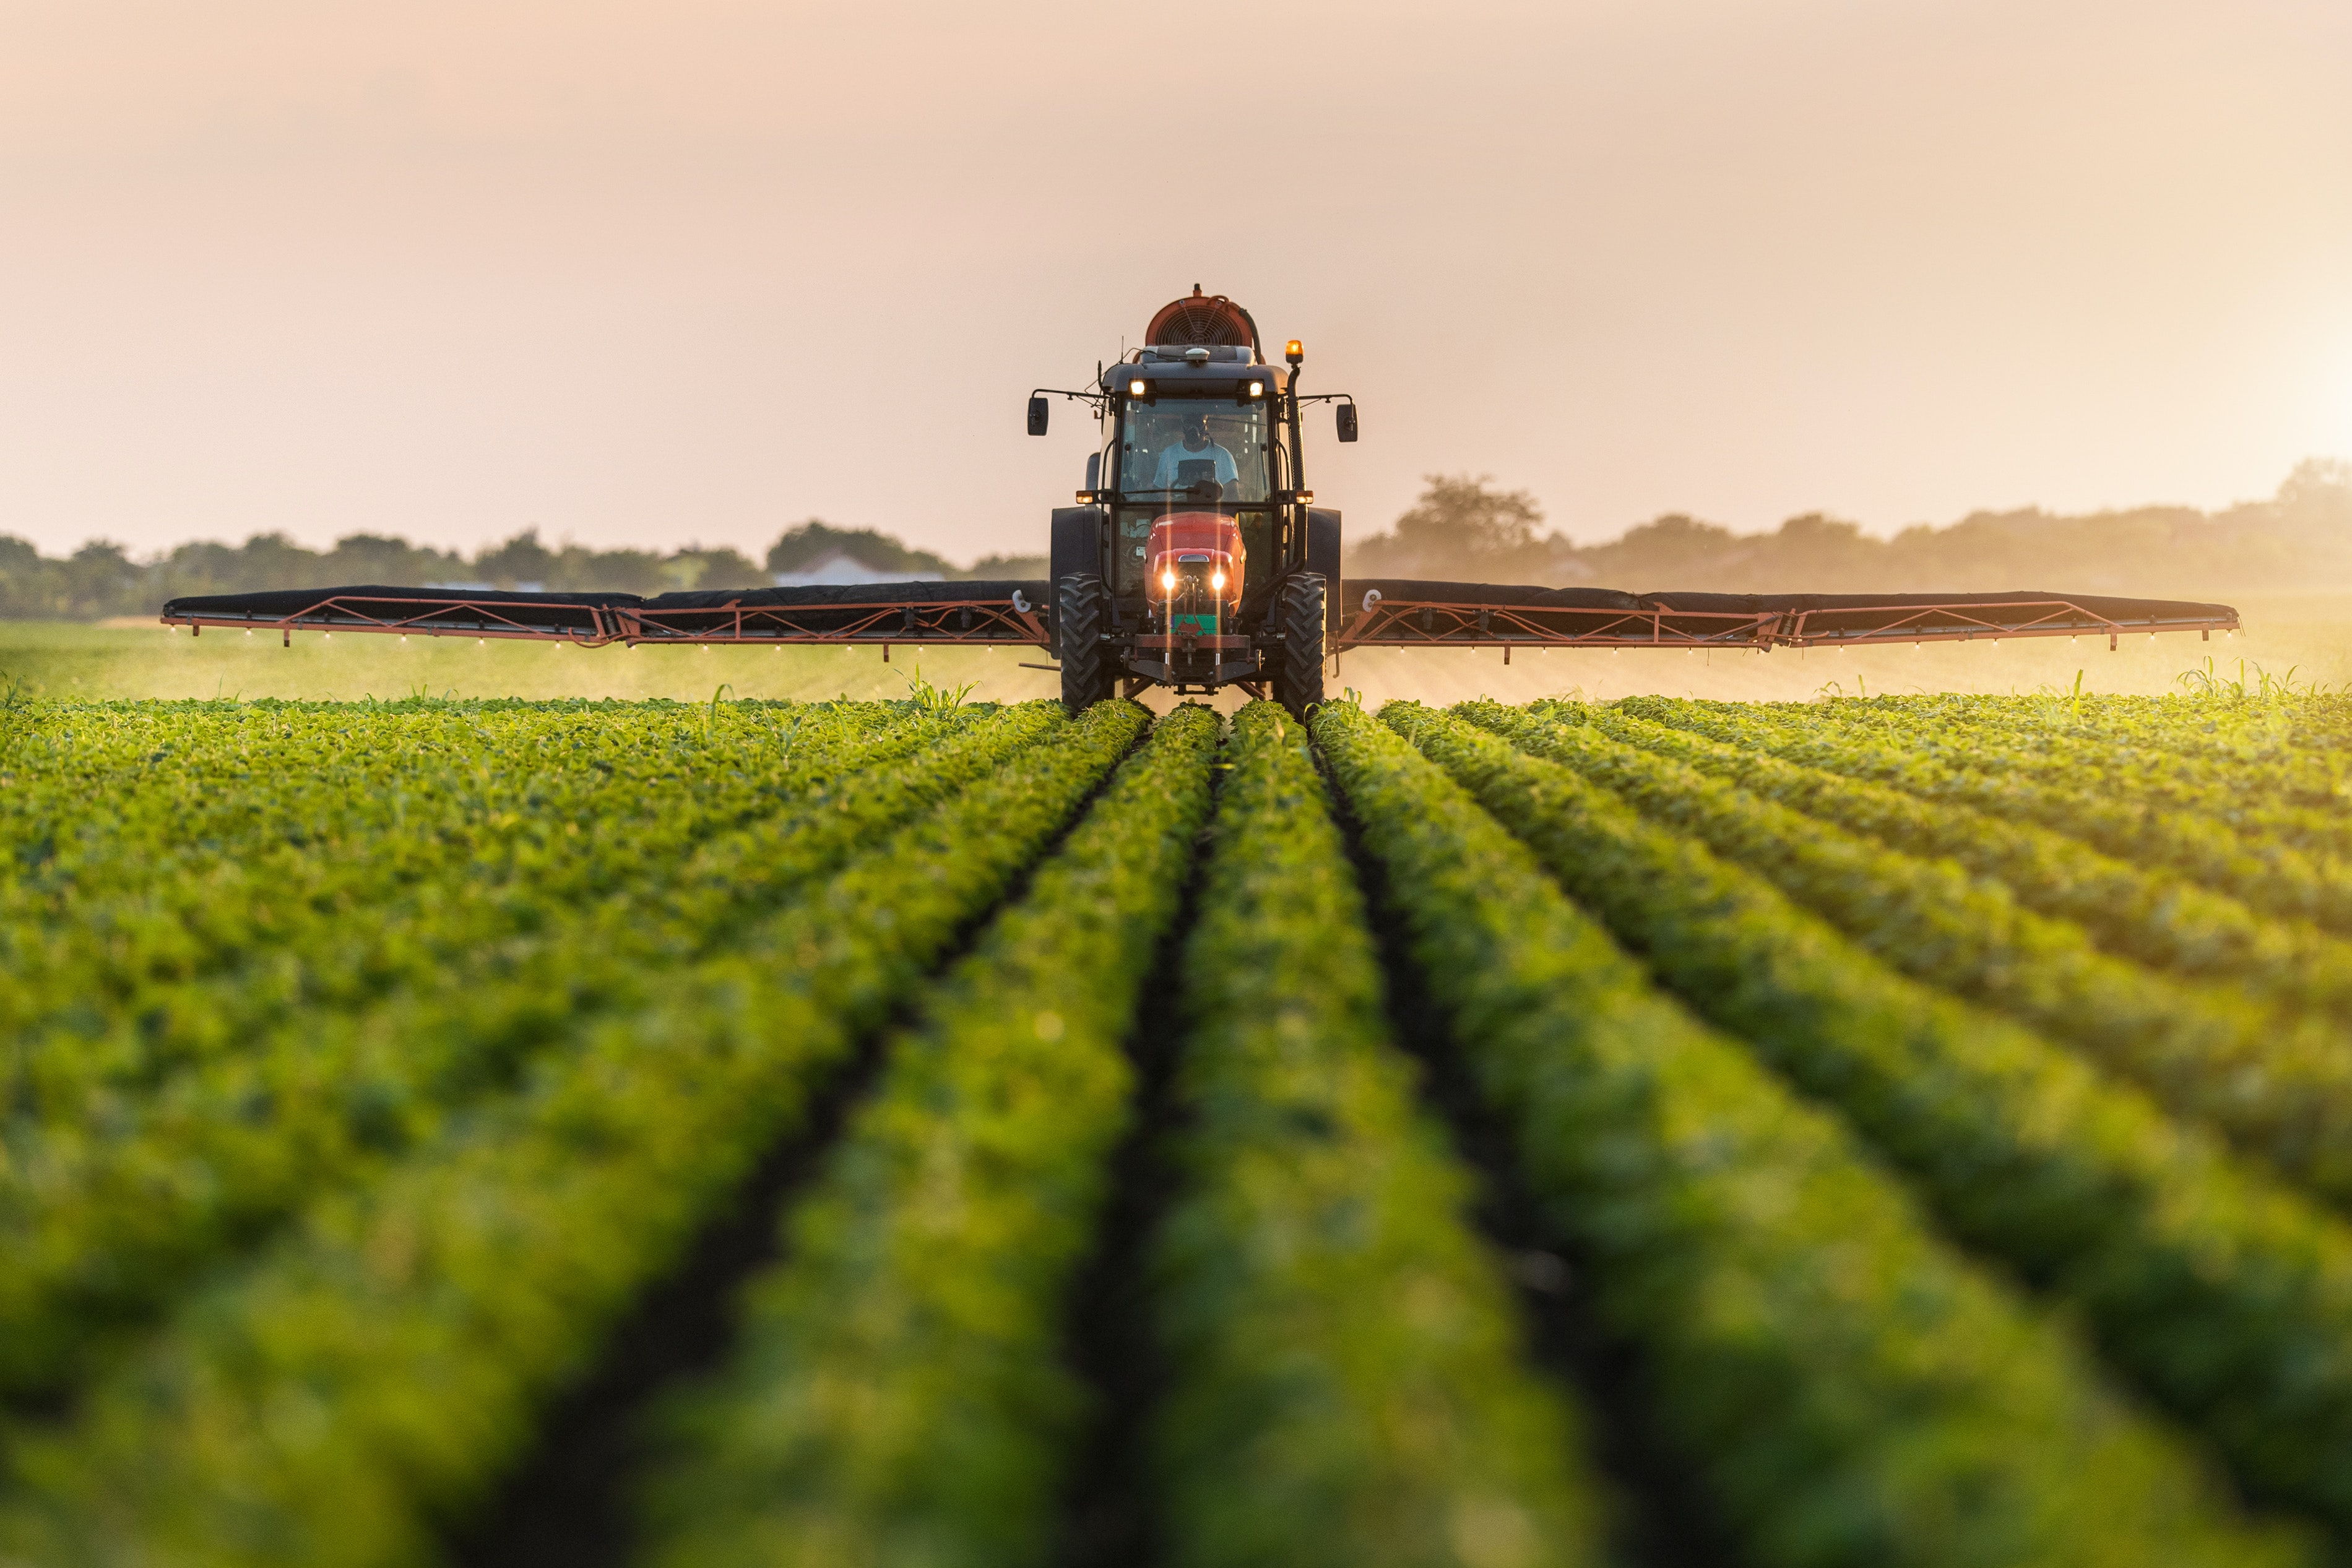 Tractor sprays pesticides on soybean field.